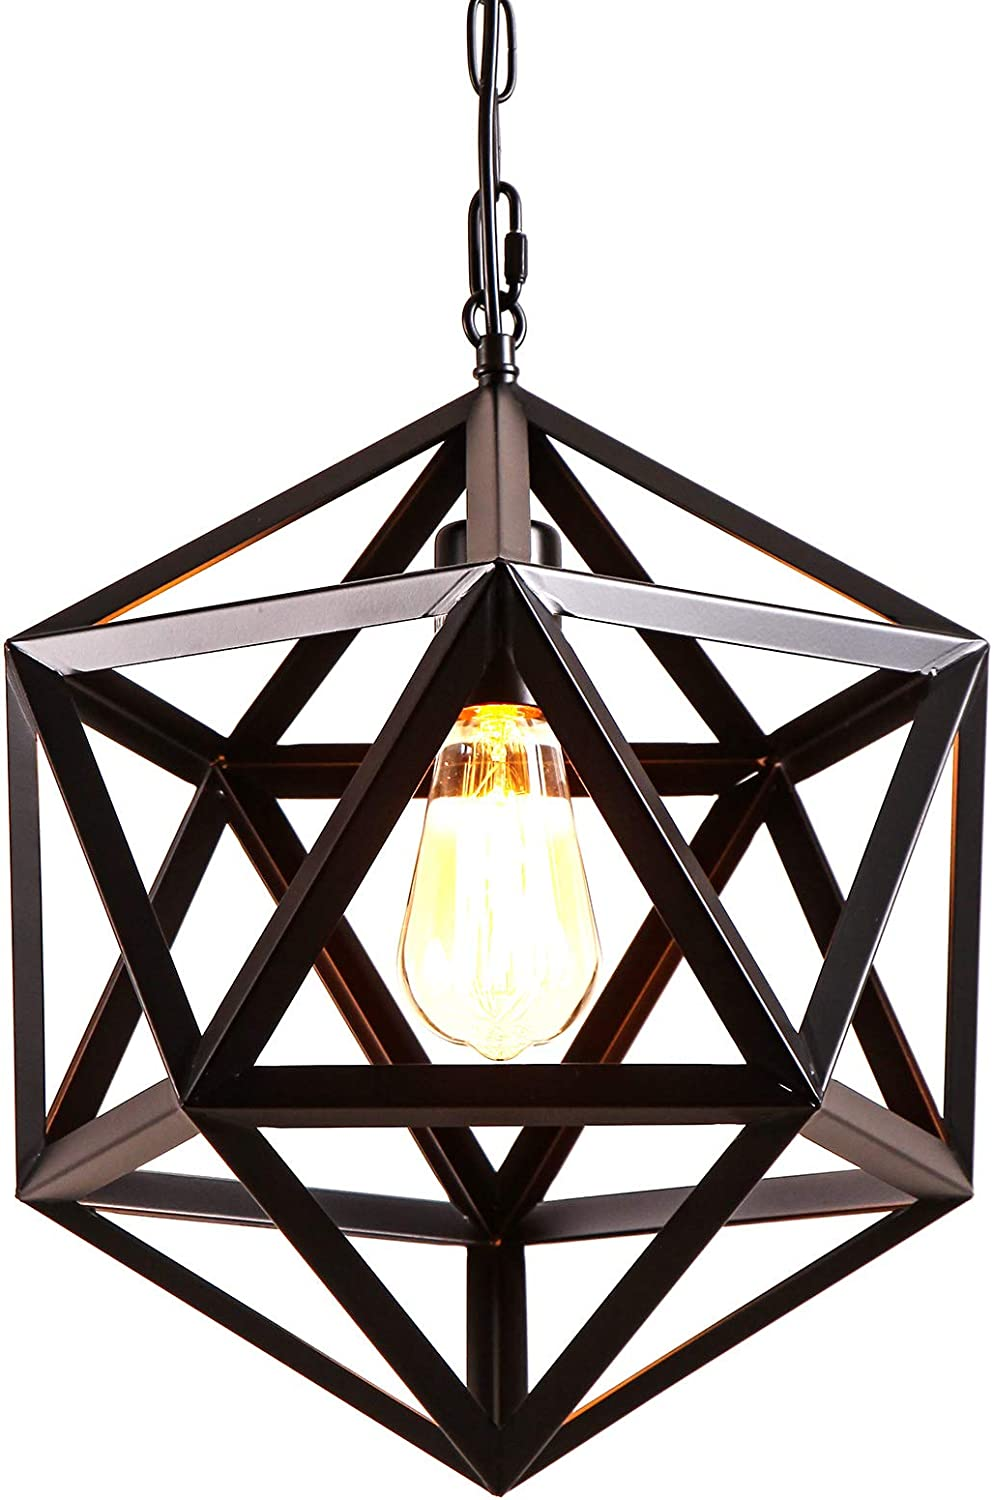 AIDOS Industrial Geometric Pendant Light, Polyhedron Vintage Wrought Iron Metal Cage Hanging Light Fixture for Bar Restaurant Kitchen Cafe, Matte Black Bulb not Included